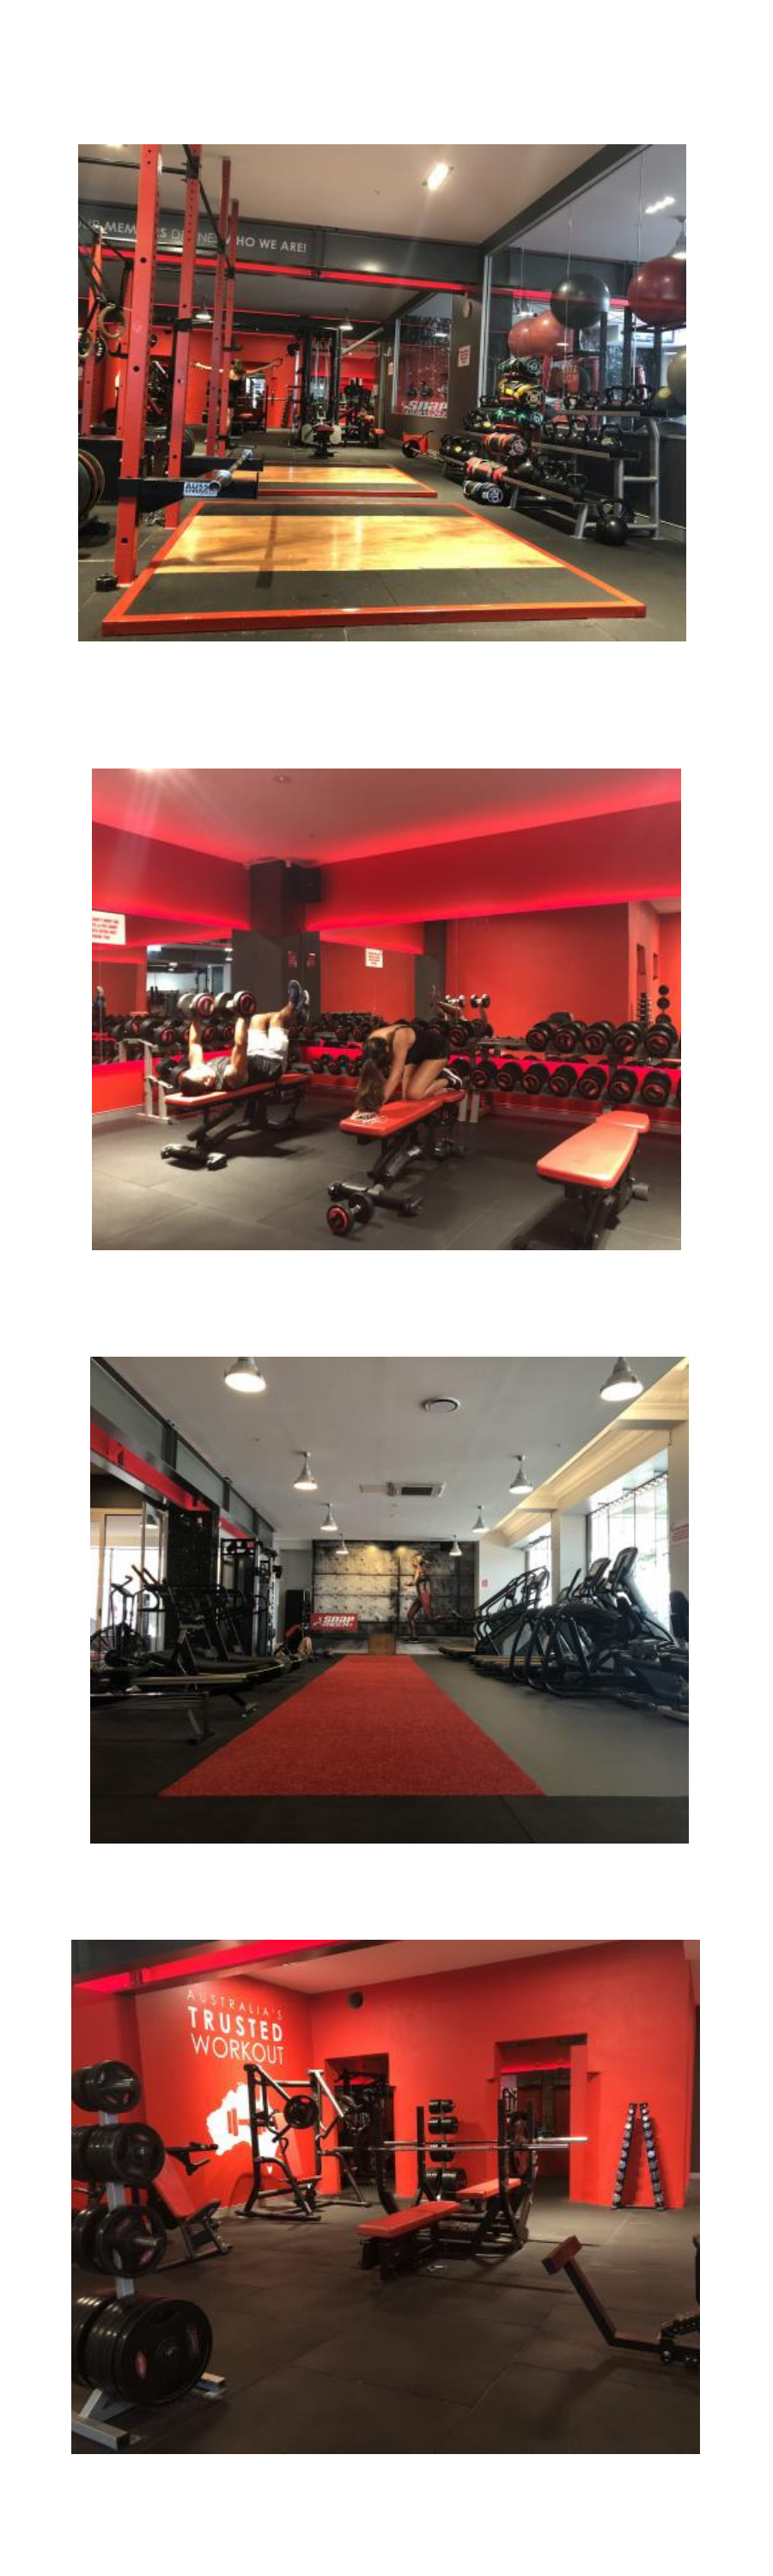 Snap Fitness - 24 Hour Gym Brisbane CBD Brisbane